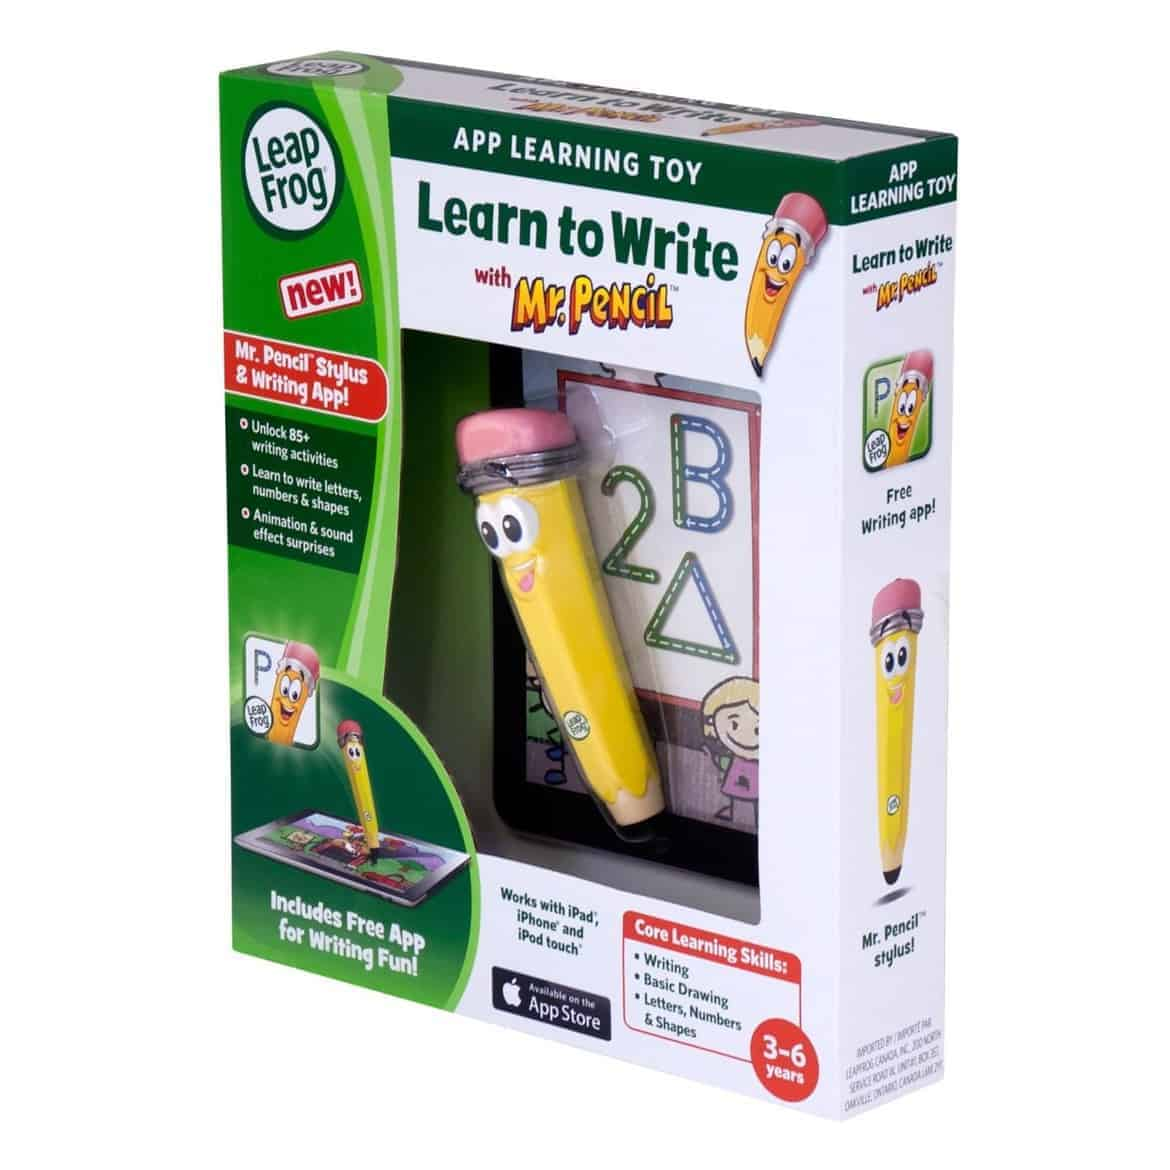 leapfrog_learn_to_write_with_mr._pencil_stylus_writing_app